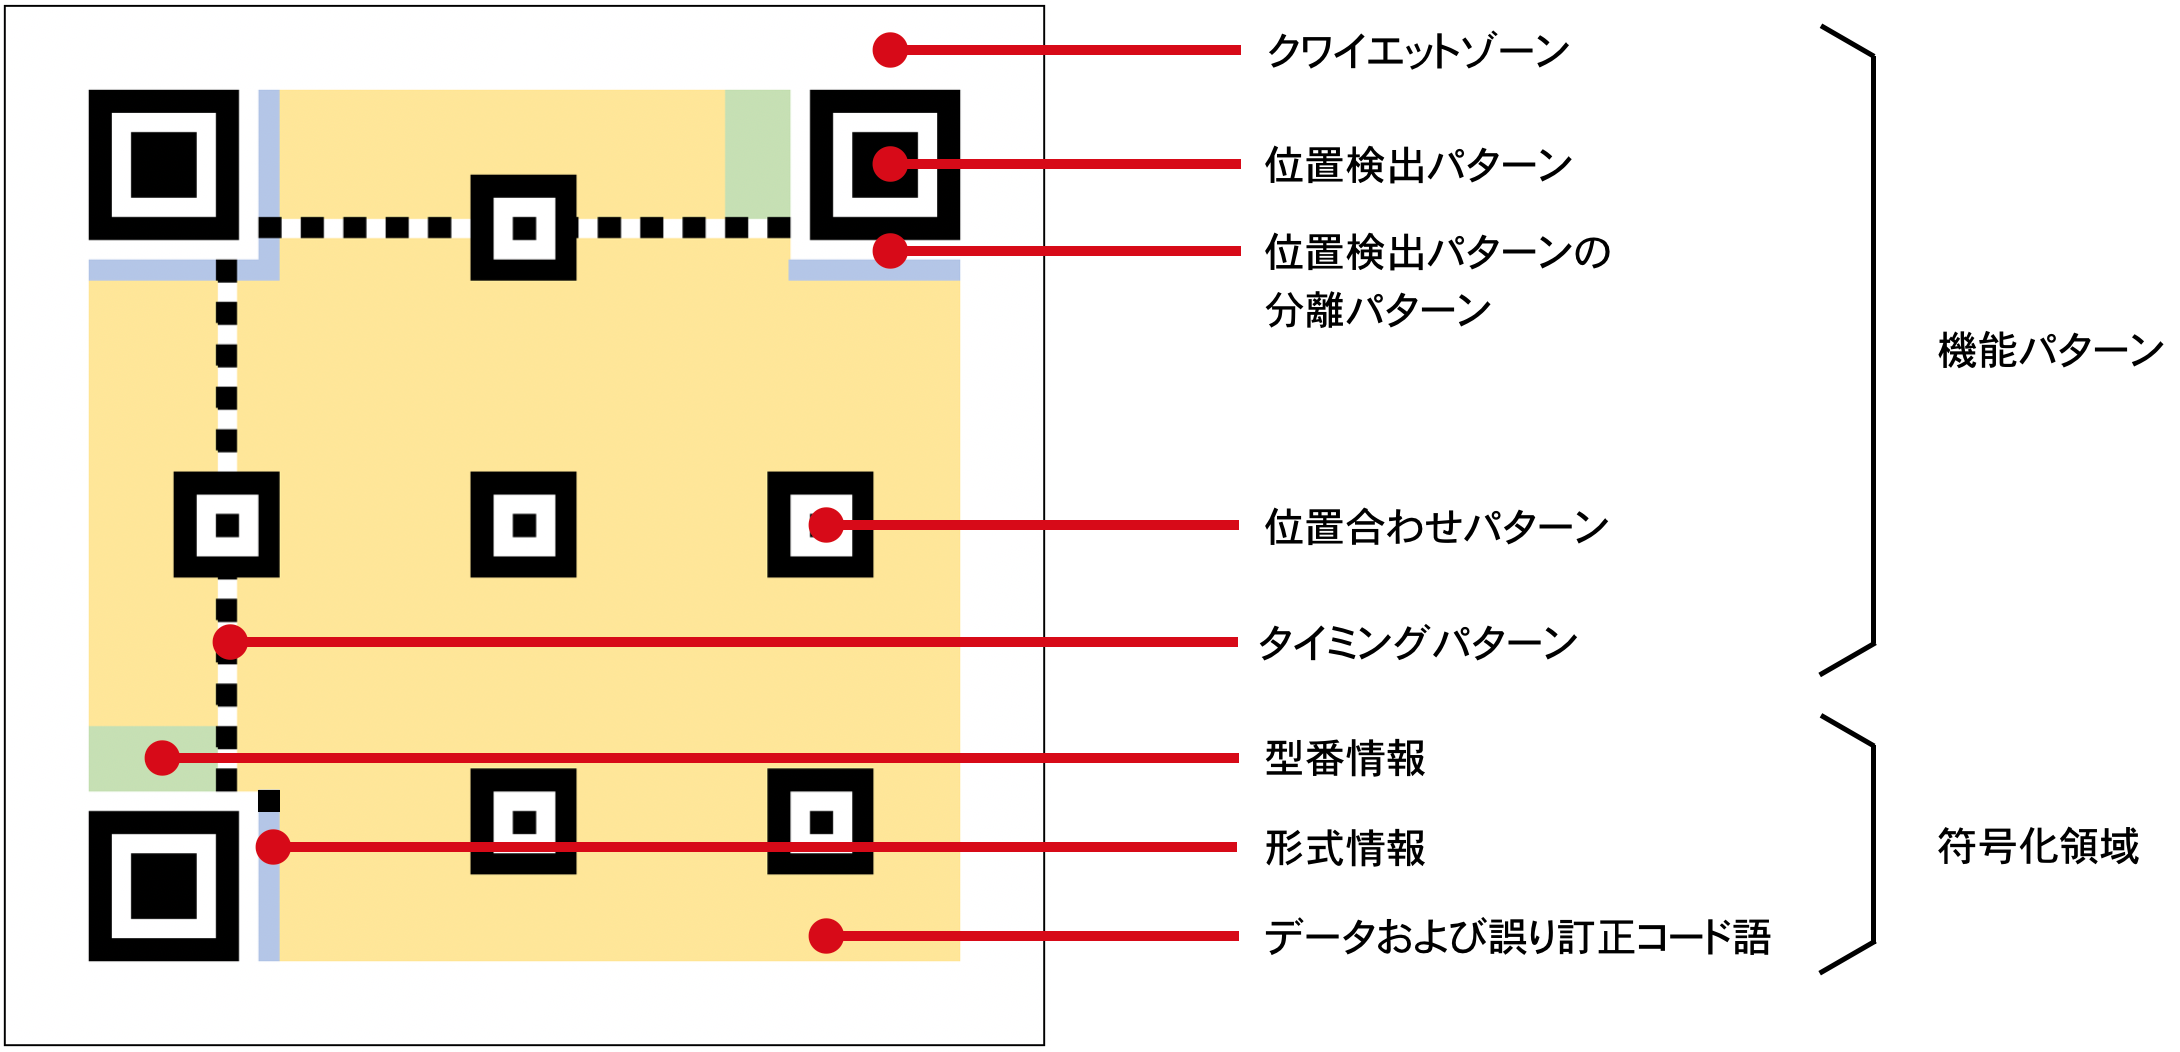 qrcode_structure.png